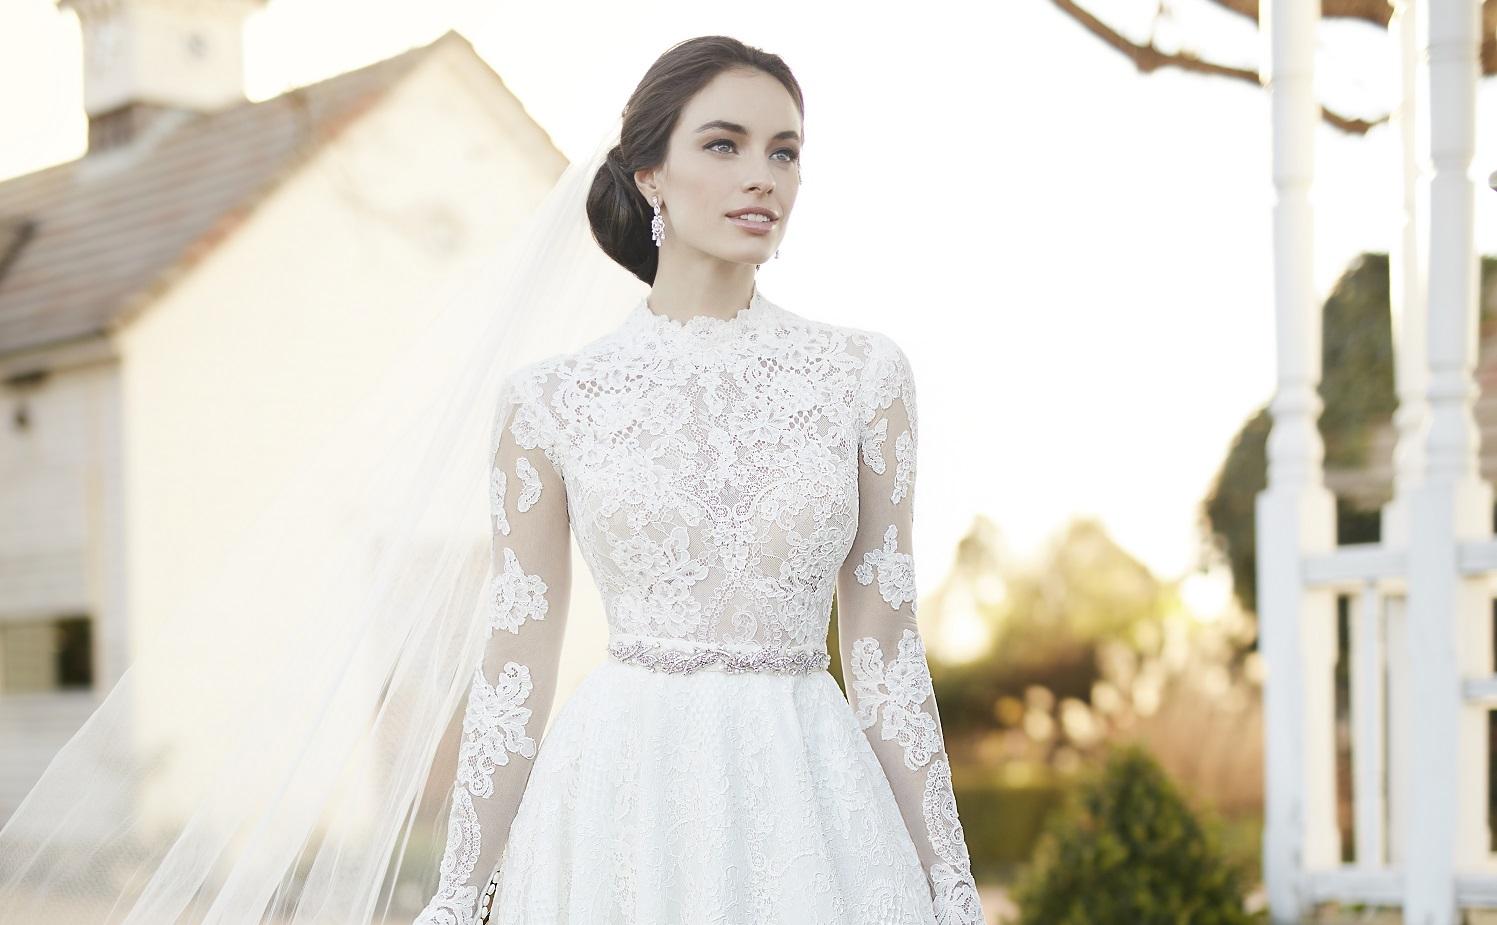 Wedding Dress Styles: Find Your Dream Dress